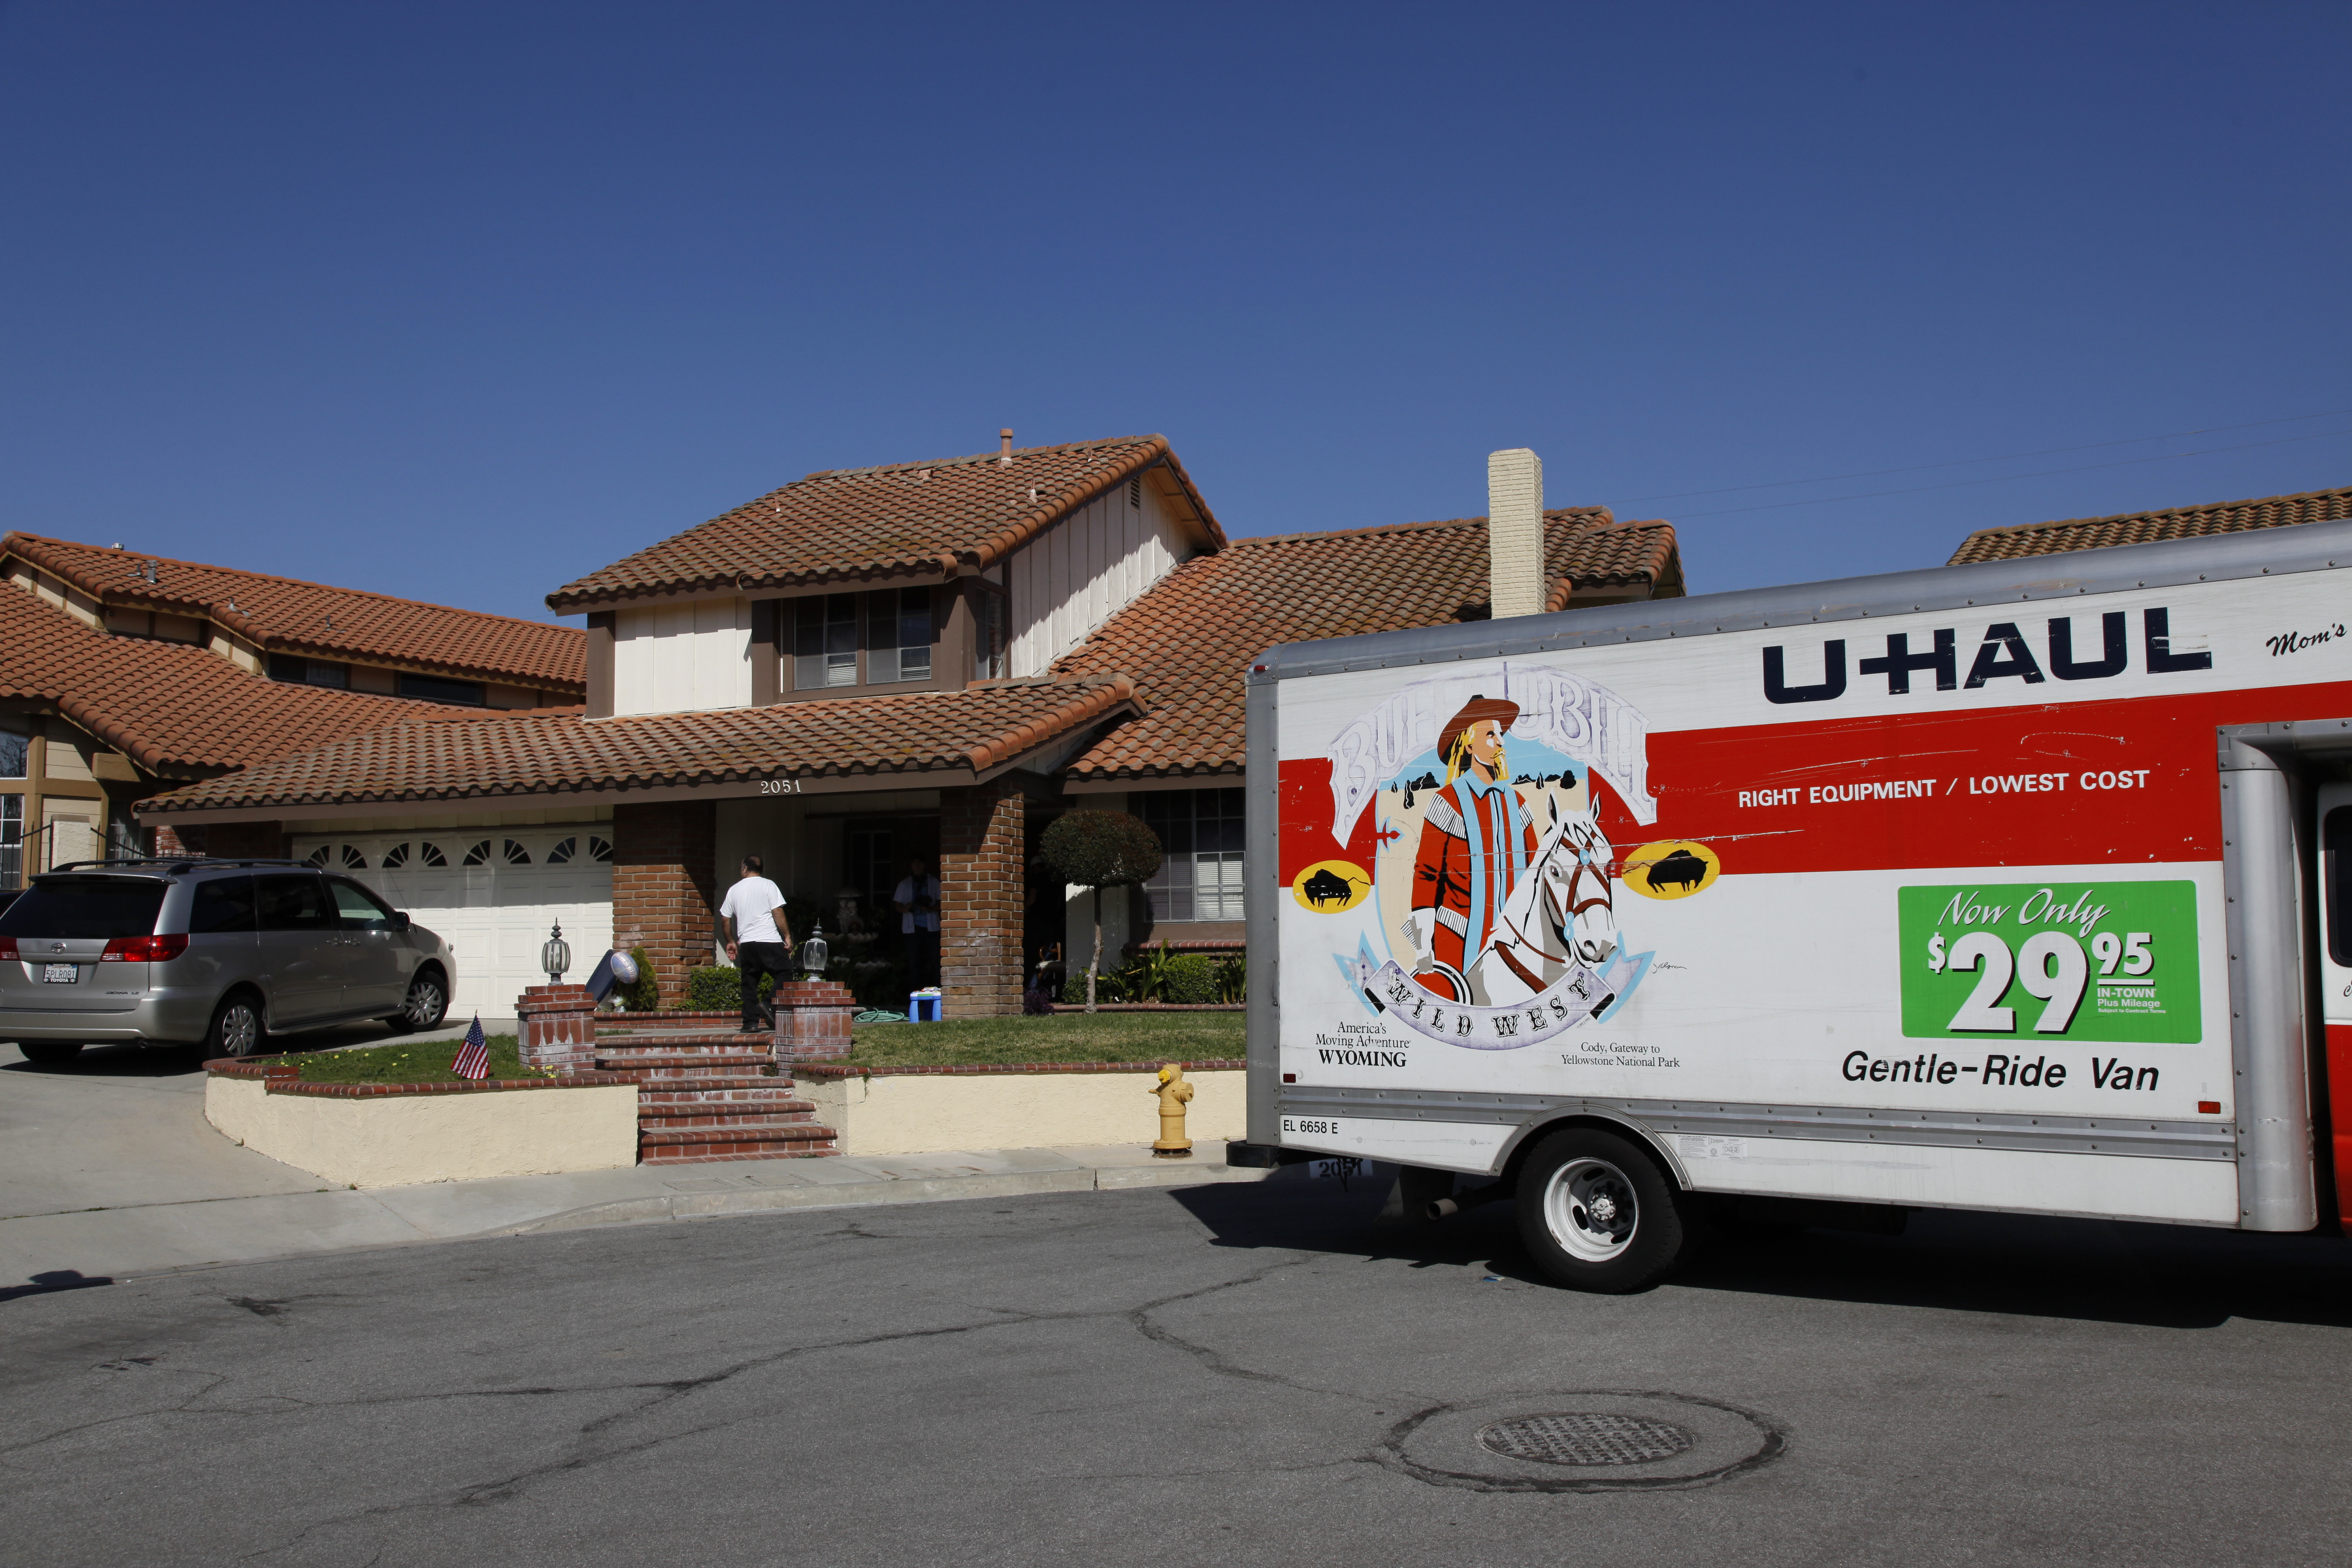 A white home at the end of a cul-de-sac with a Spanish tile roof and a U-Haul trailer parked in the street.